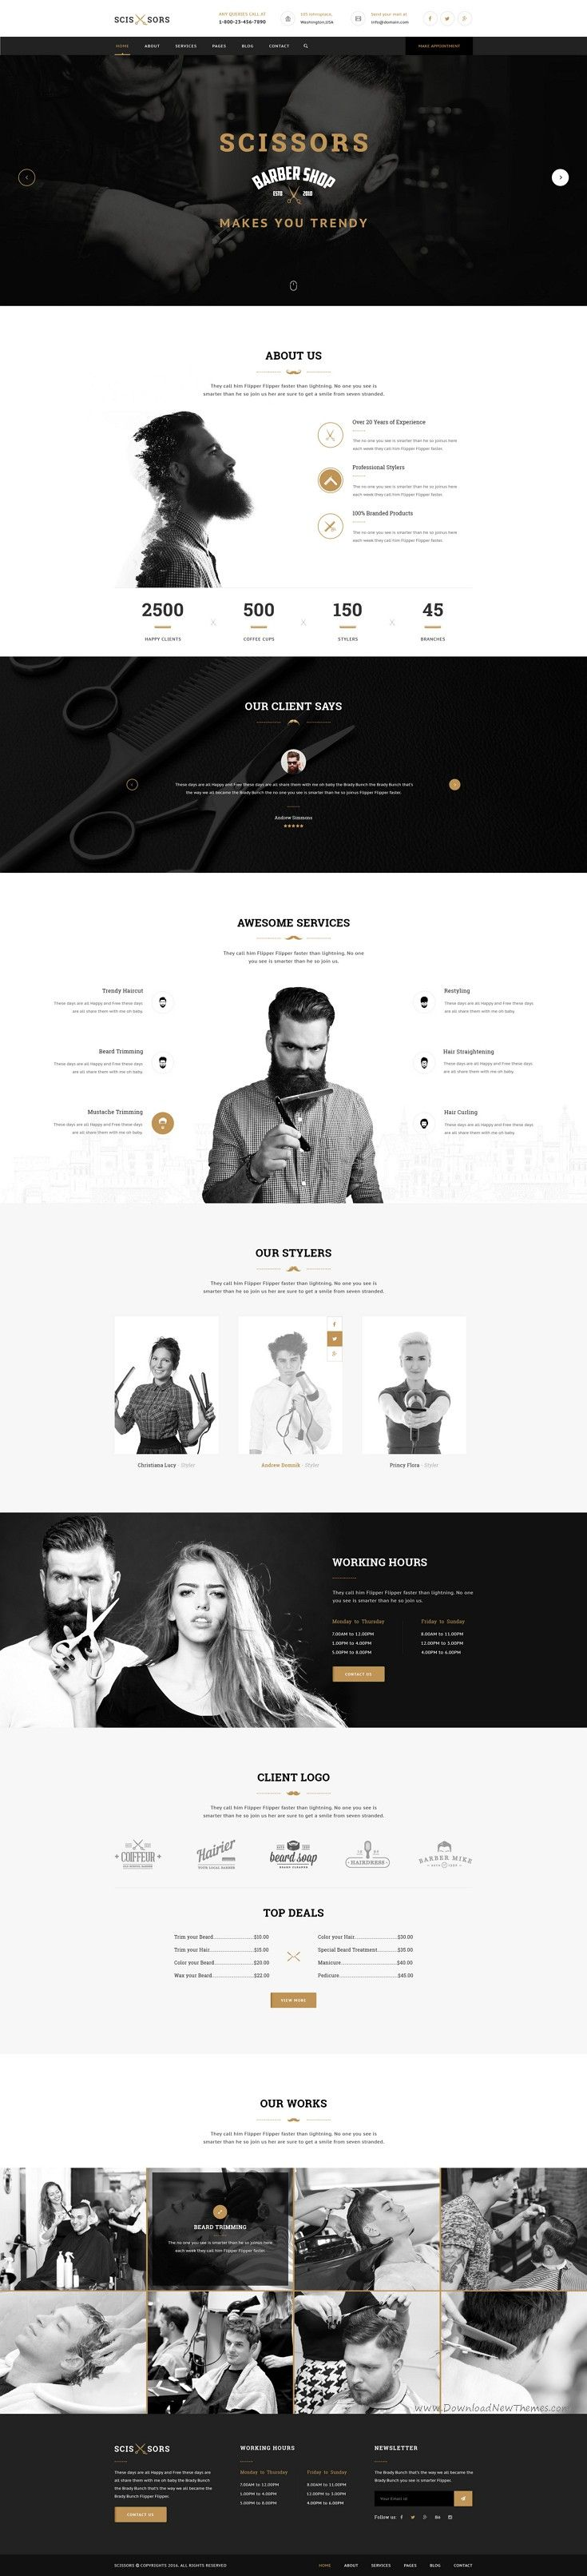 Scissors : Salon & Hair Styling PSD Template suitable for all types of #Salon and #Hair Styling businesses website. That Includes totally 20 Pages.